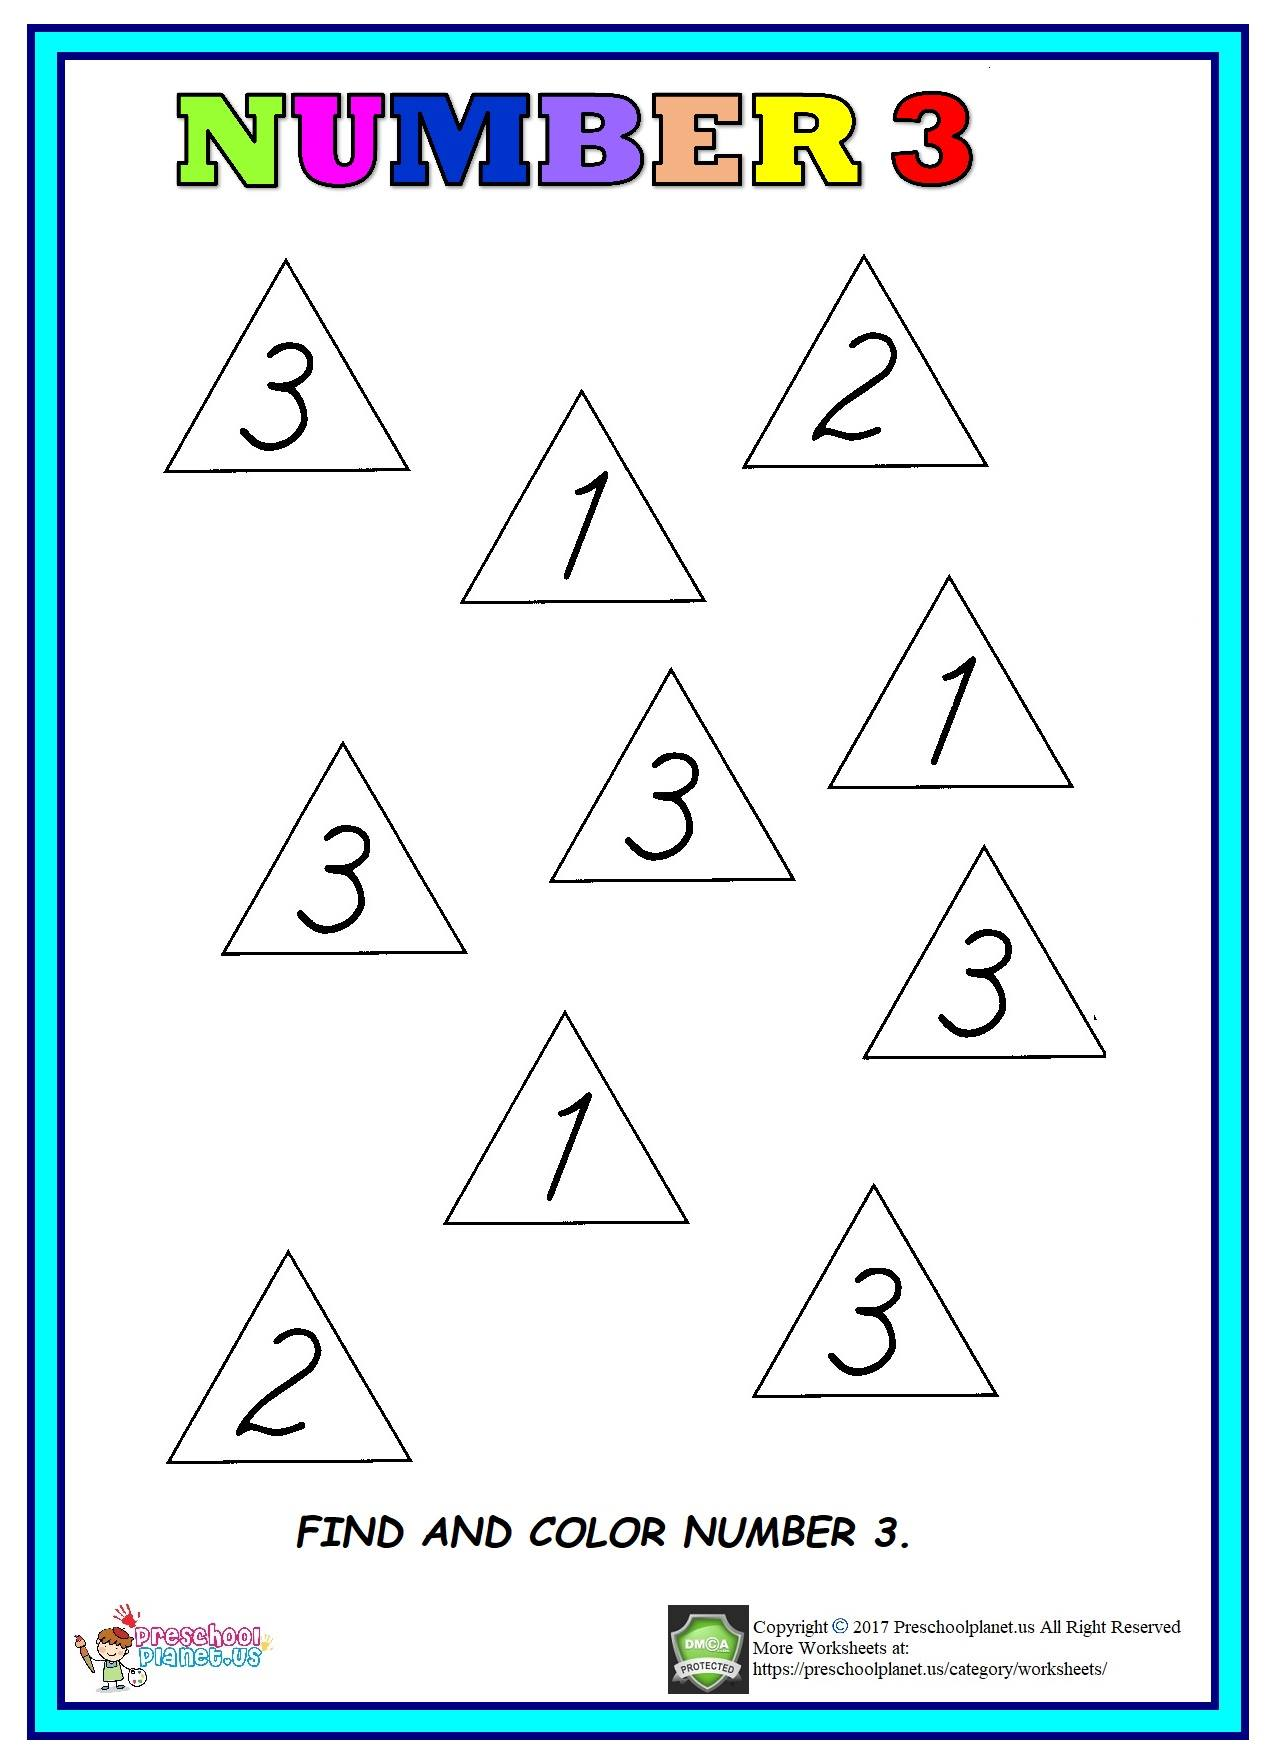 Balloon Trace Worksheet Preschoolplanet